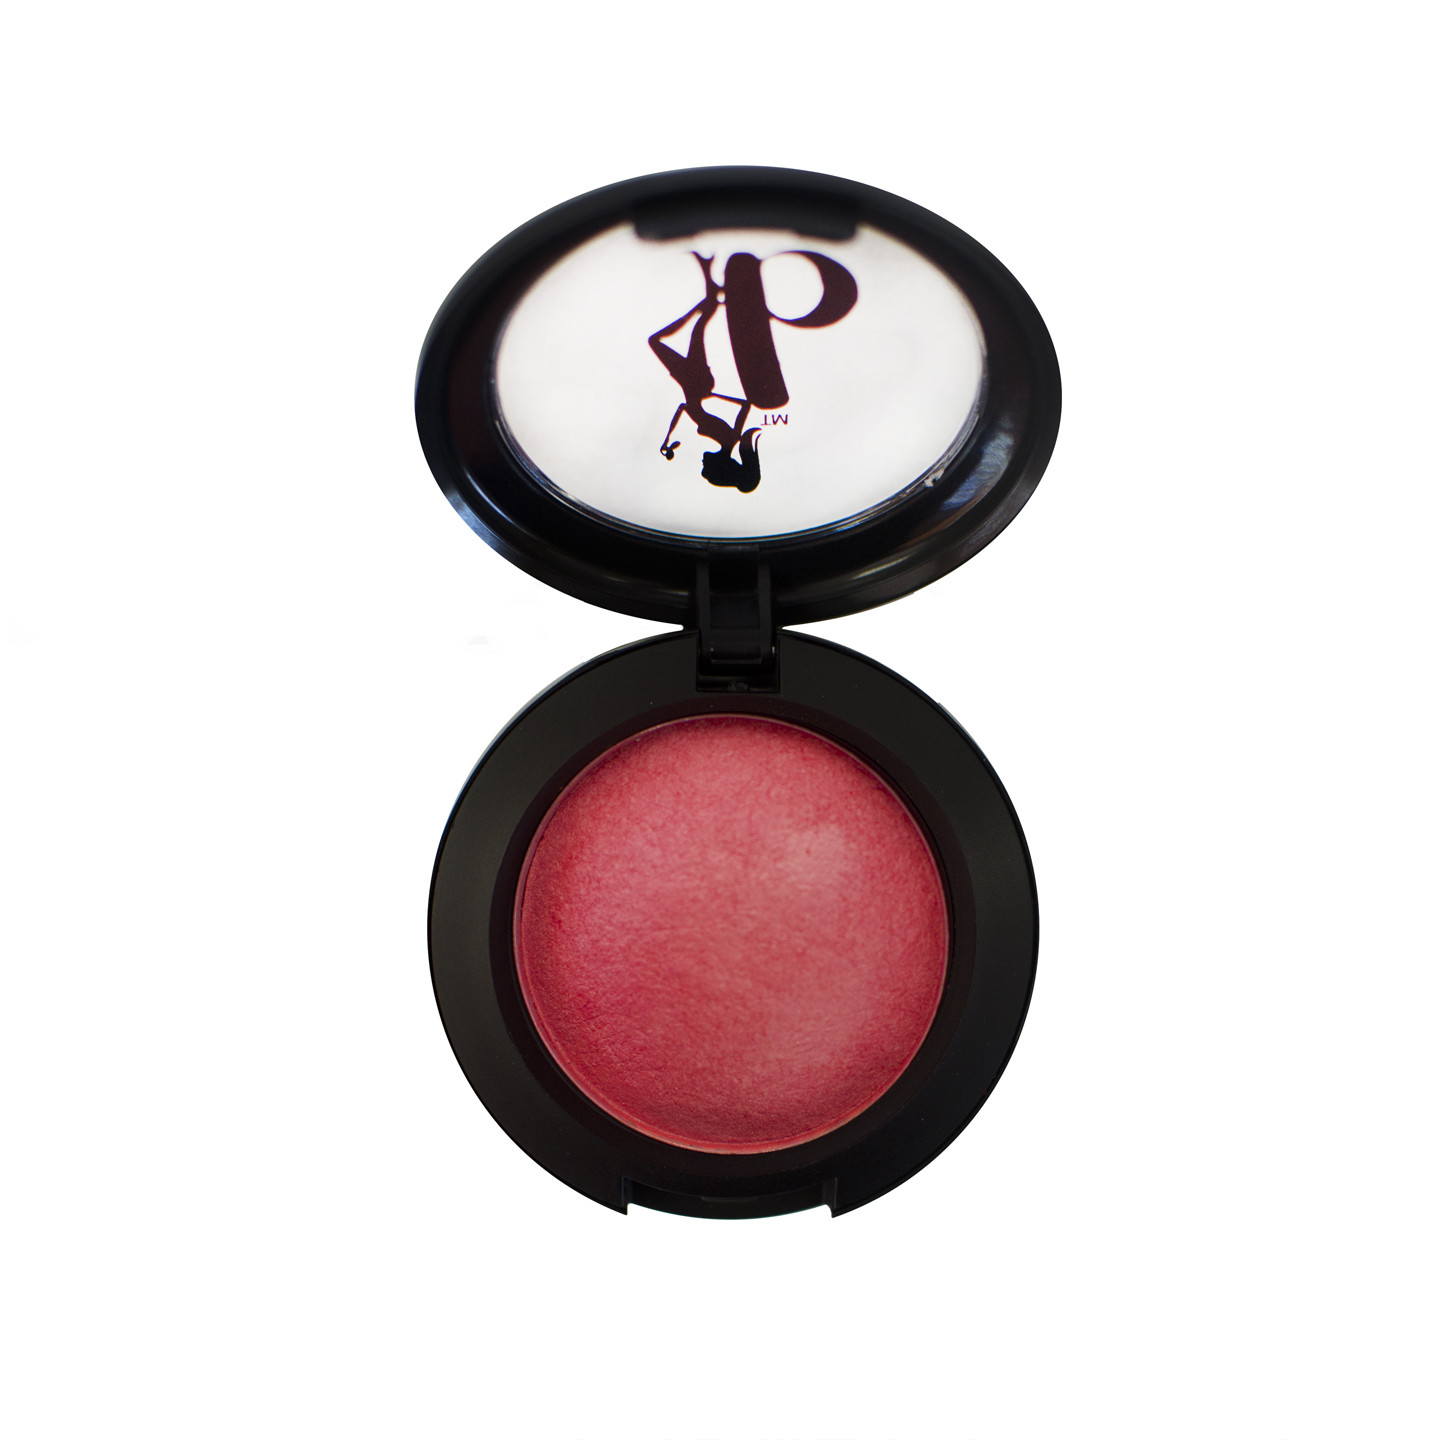 This Be a Bombshell Baked Blush in Dangerous